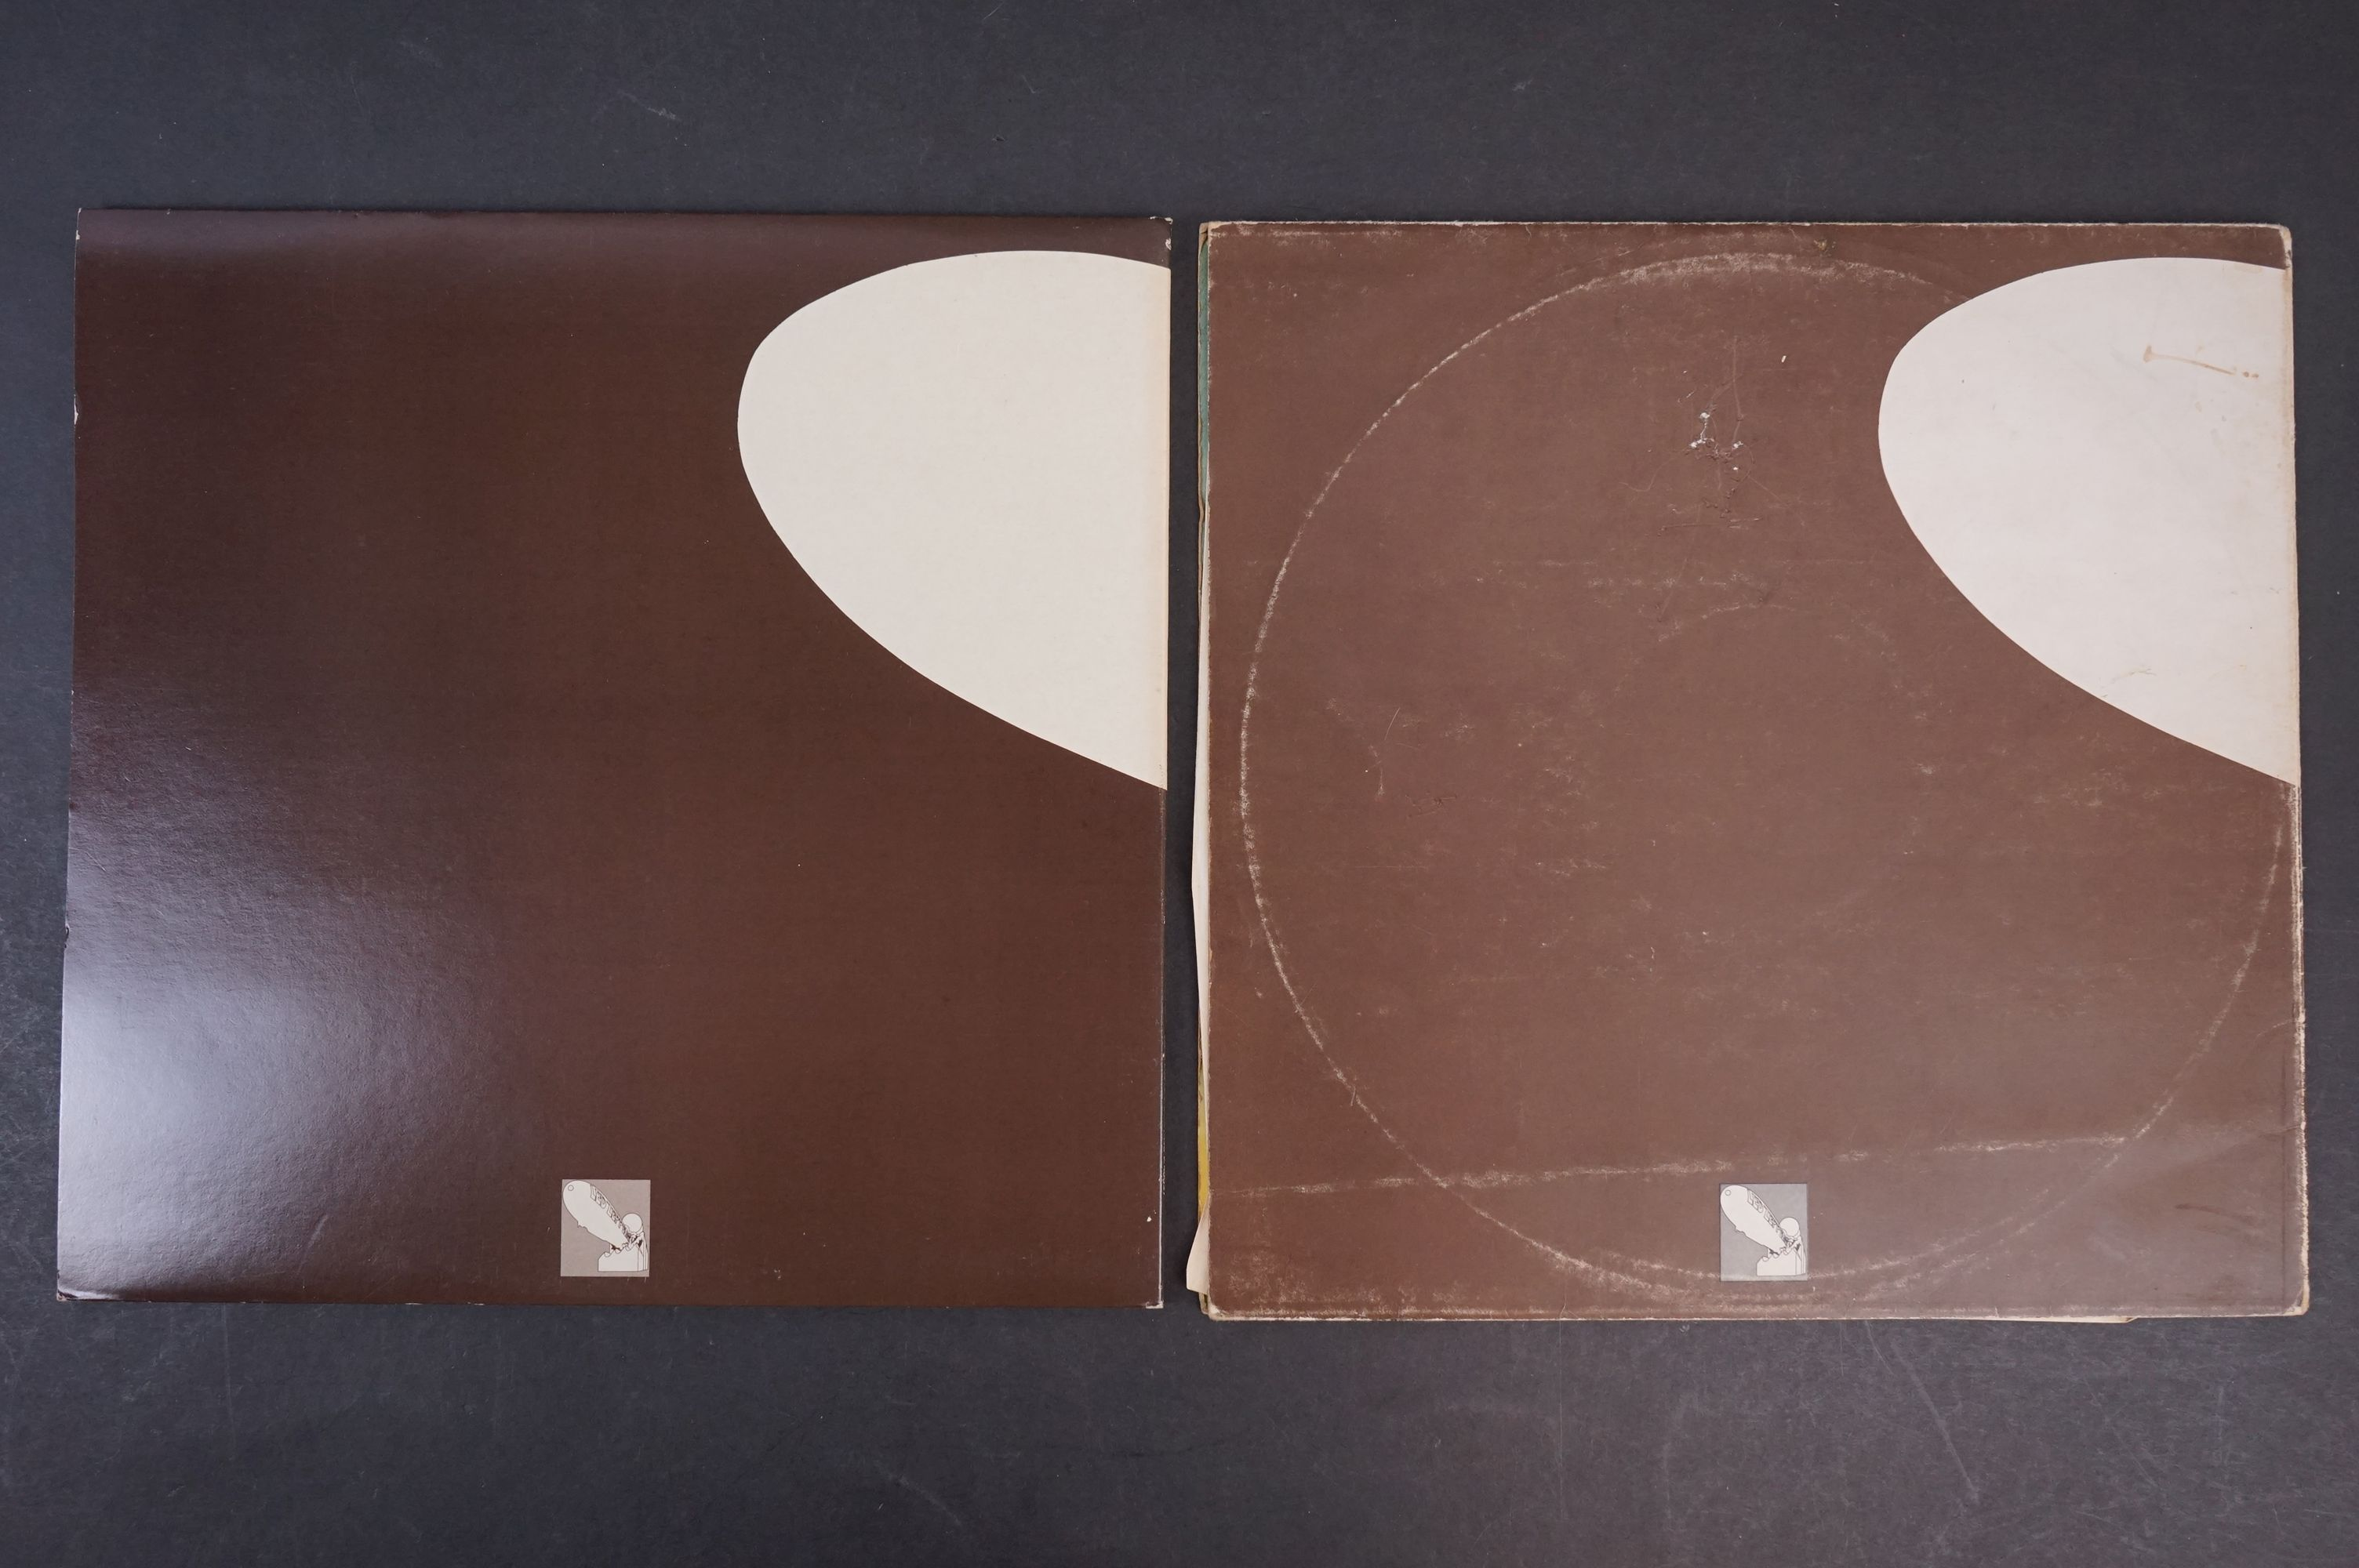 Vinyl - Six Led Zeppelin LPs to include In Through the Outdoor (cover D) SSK59410, Coda 790051, 2 - Image 5 of 17